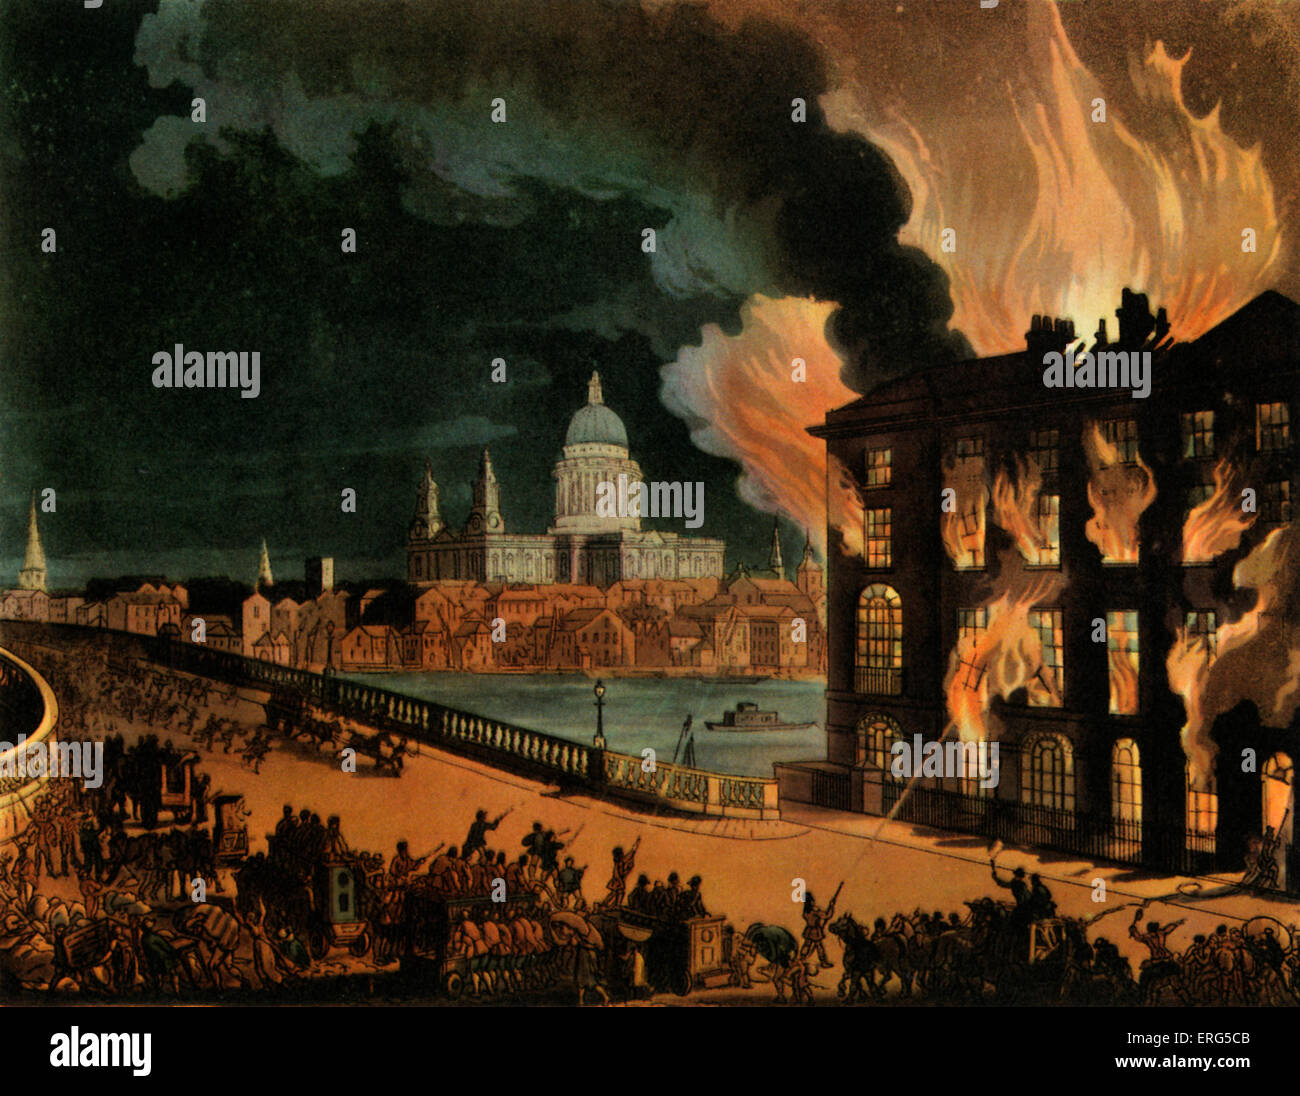 Fire in London. Coloured aquatint by Pugin and Rowlandson from ' The Microcosm of London '. Ackerman, 1808. - Stock Image